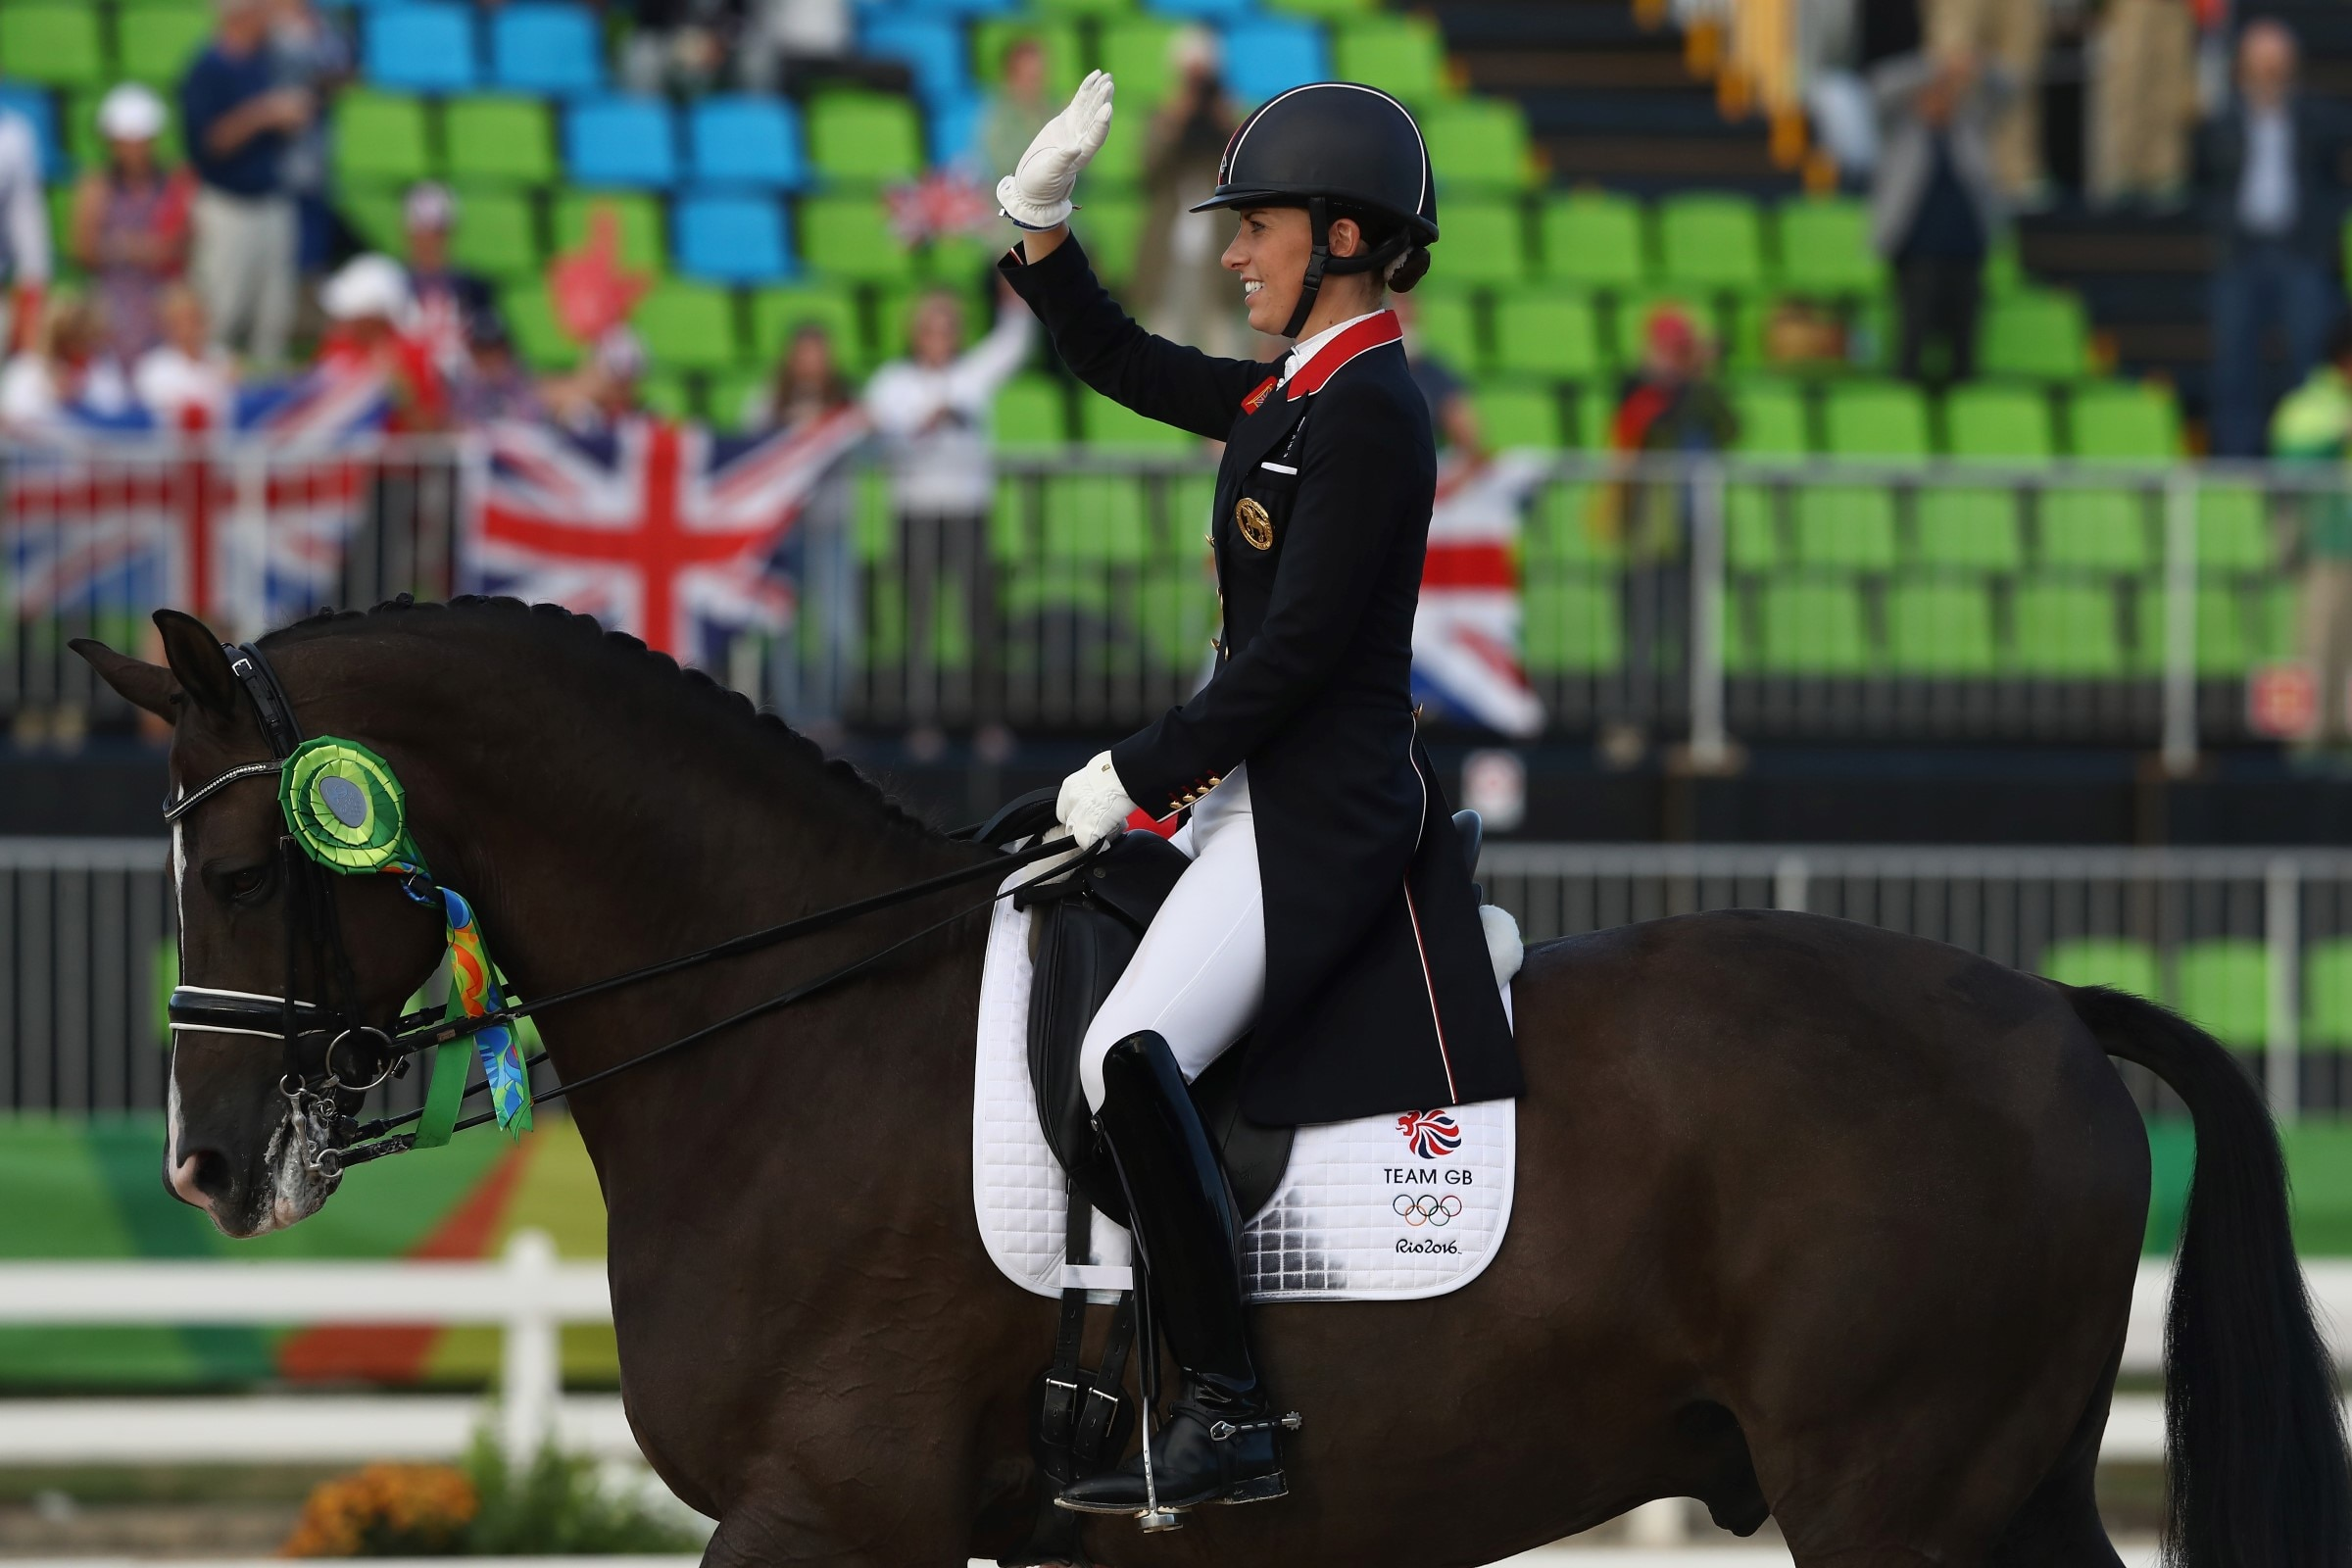 Equestrian's finest put on a spectacular show at Rio 2016 - Olympic News